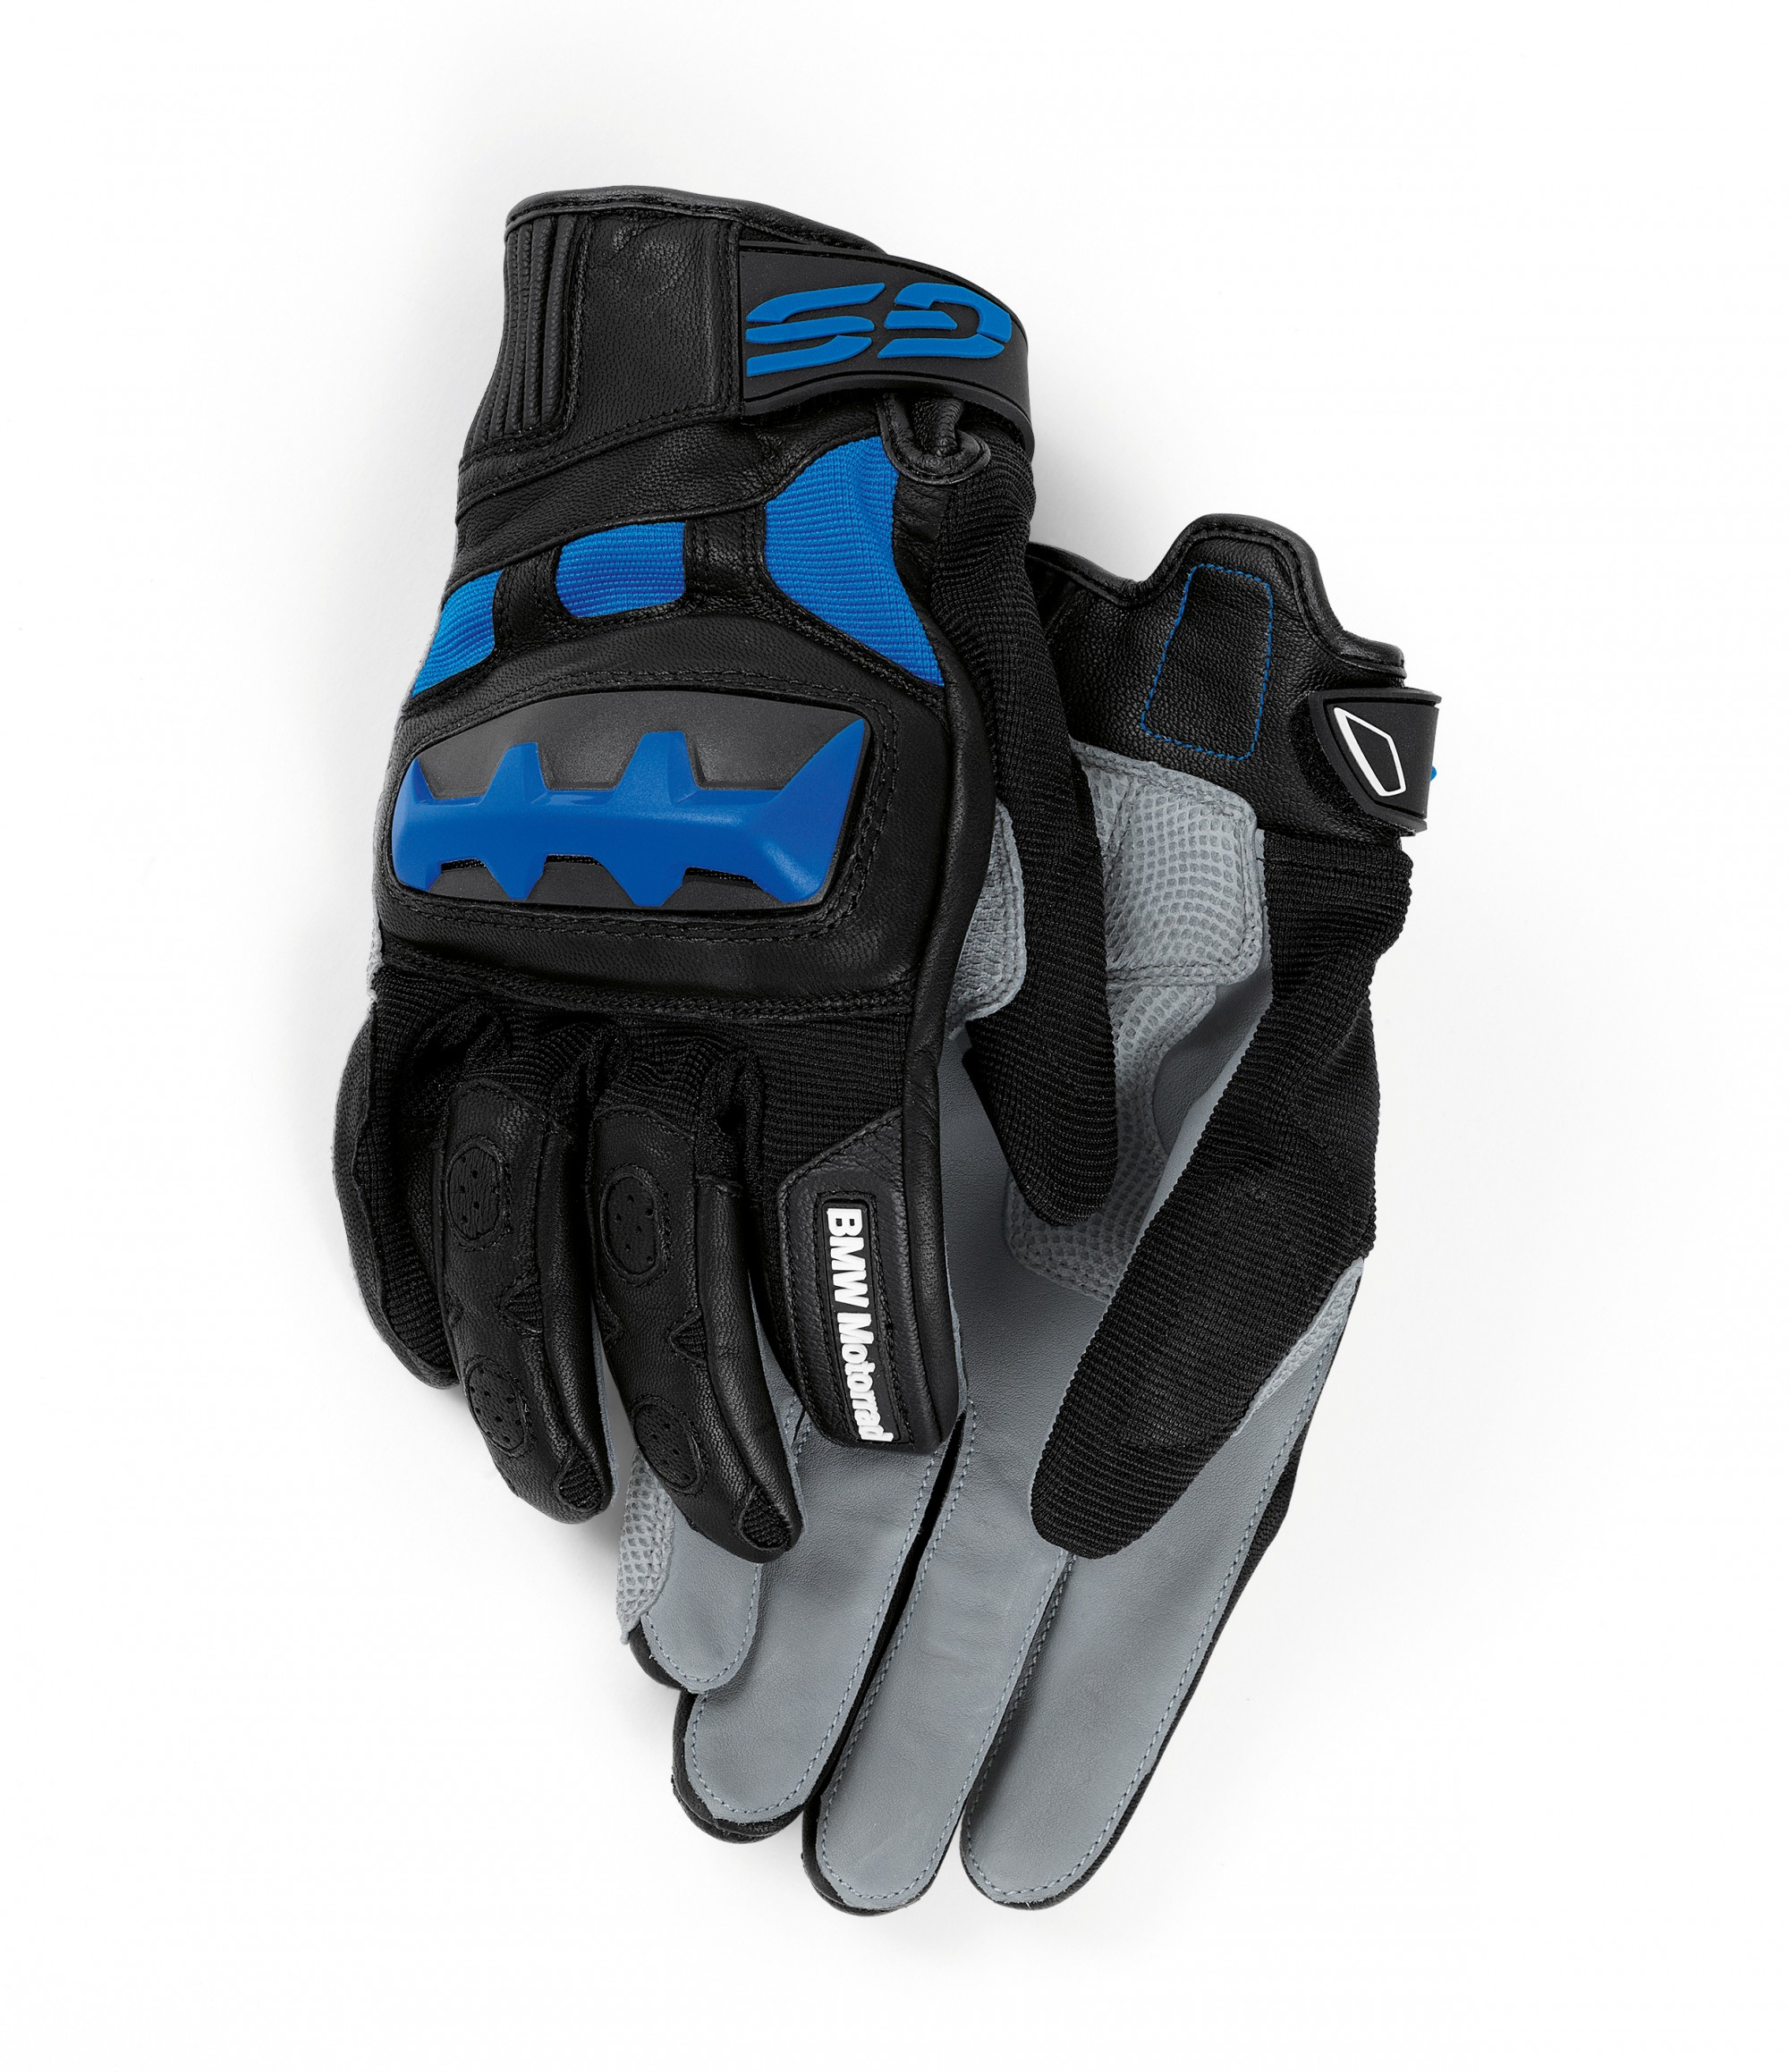 Мотоперчатки BMW Motorrad Rallye Gloves, Black/Blue